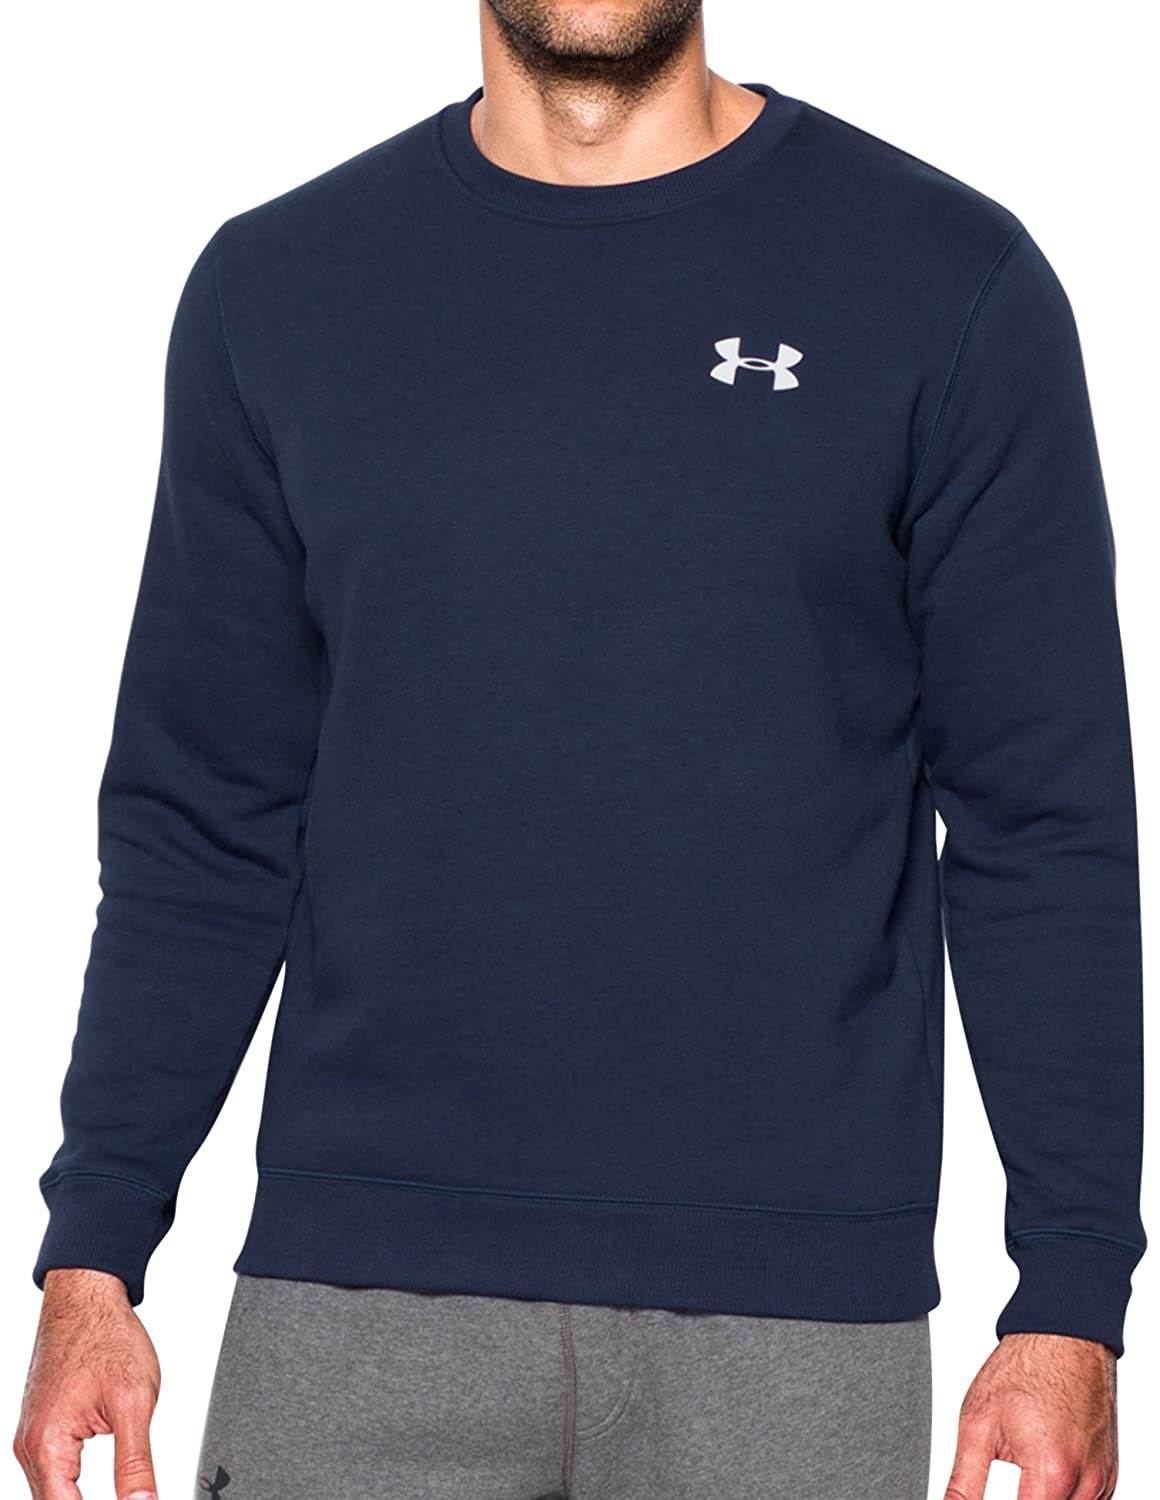 Under Armour Rival Solid Fitted Crew Men's Warm-up Top 1302854-001